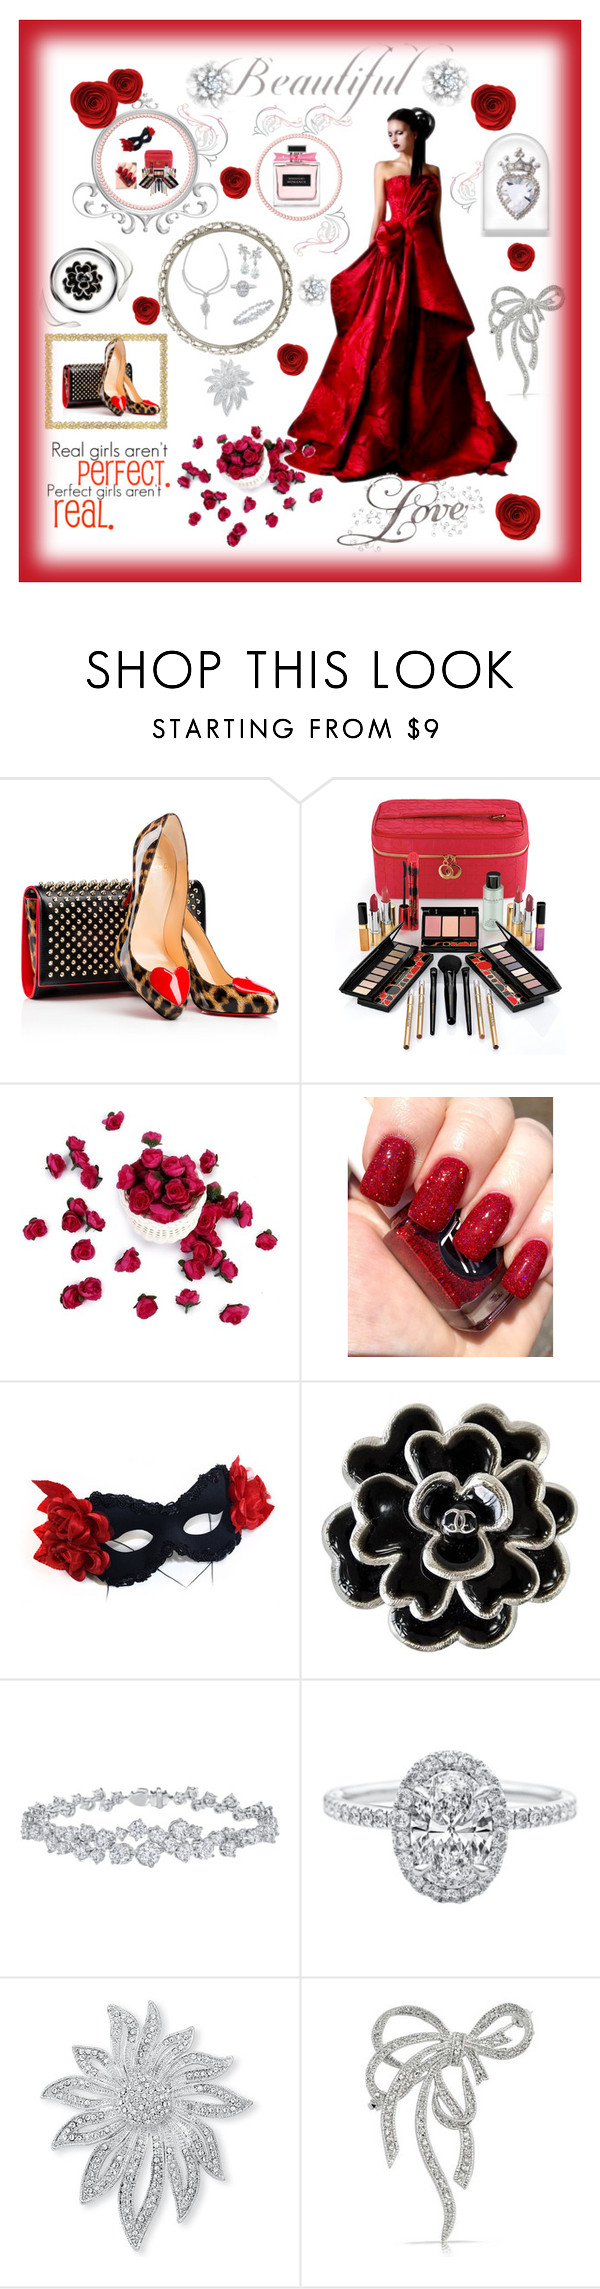 """Lady in Red Moving Ahead"" by mcronald-denise ❤ liked on Polyvore featuring Christian Louboutin, Elizabeth Arden, Masquerade, Chanel, Harry Winston, Palm Beach Jewelry and Bling Jewelry"